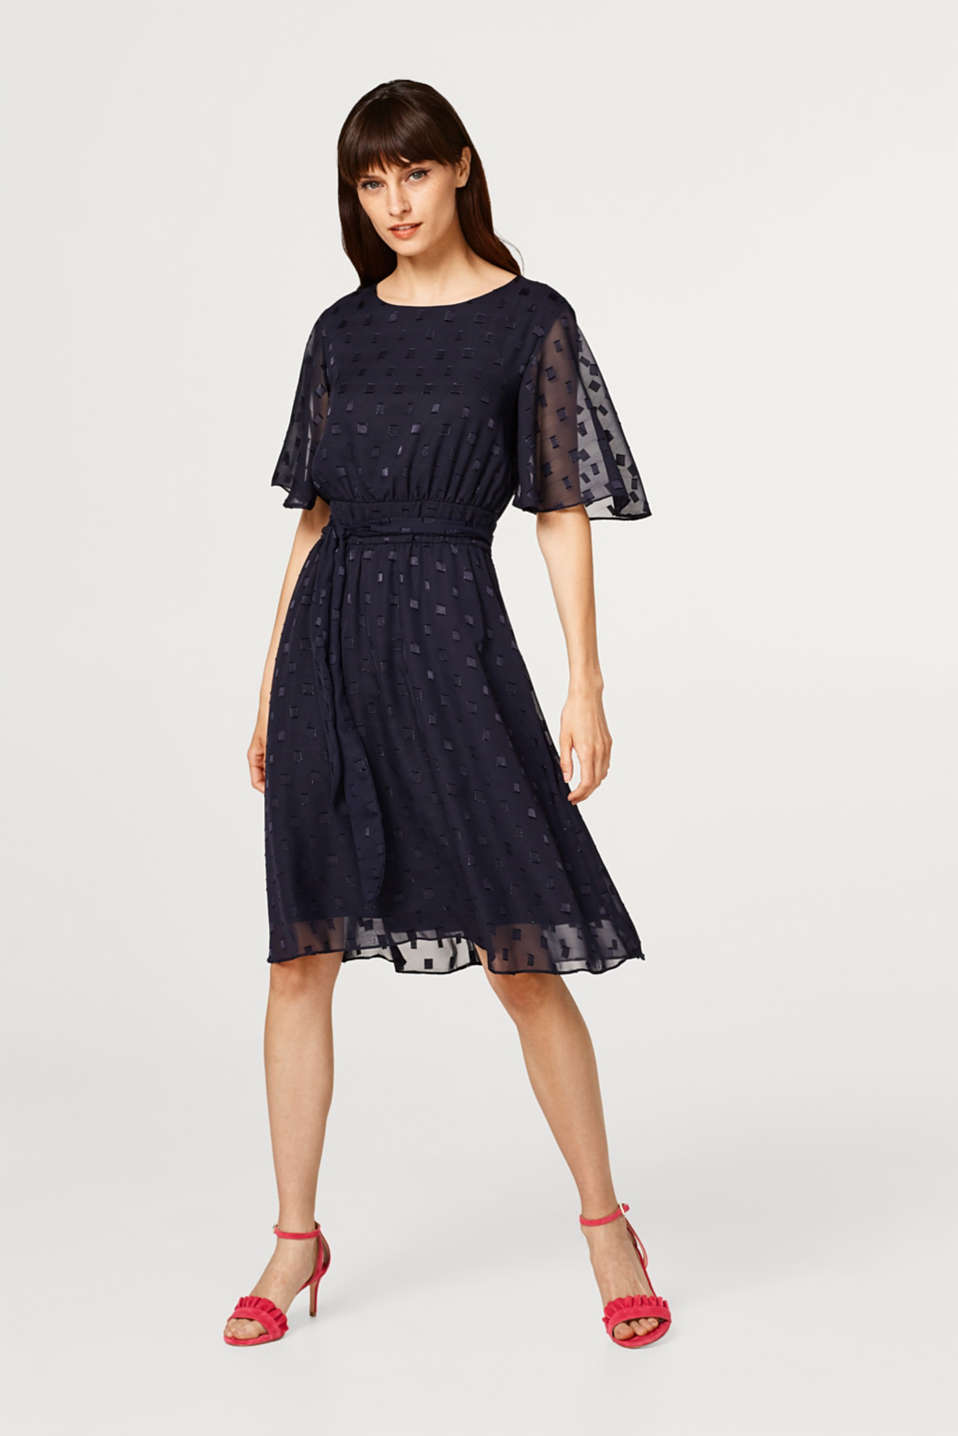 Chiffon dress with a textured pattern and bow